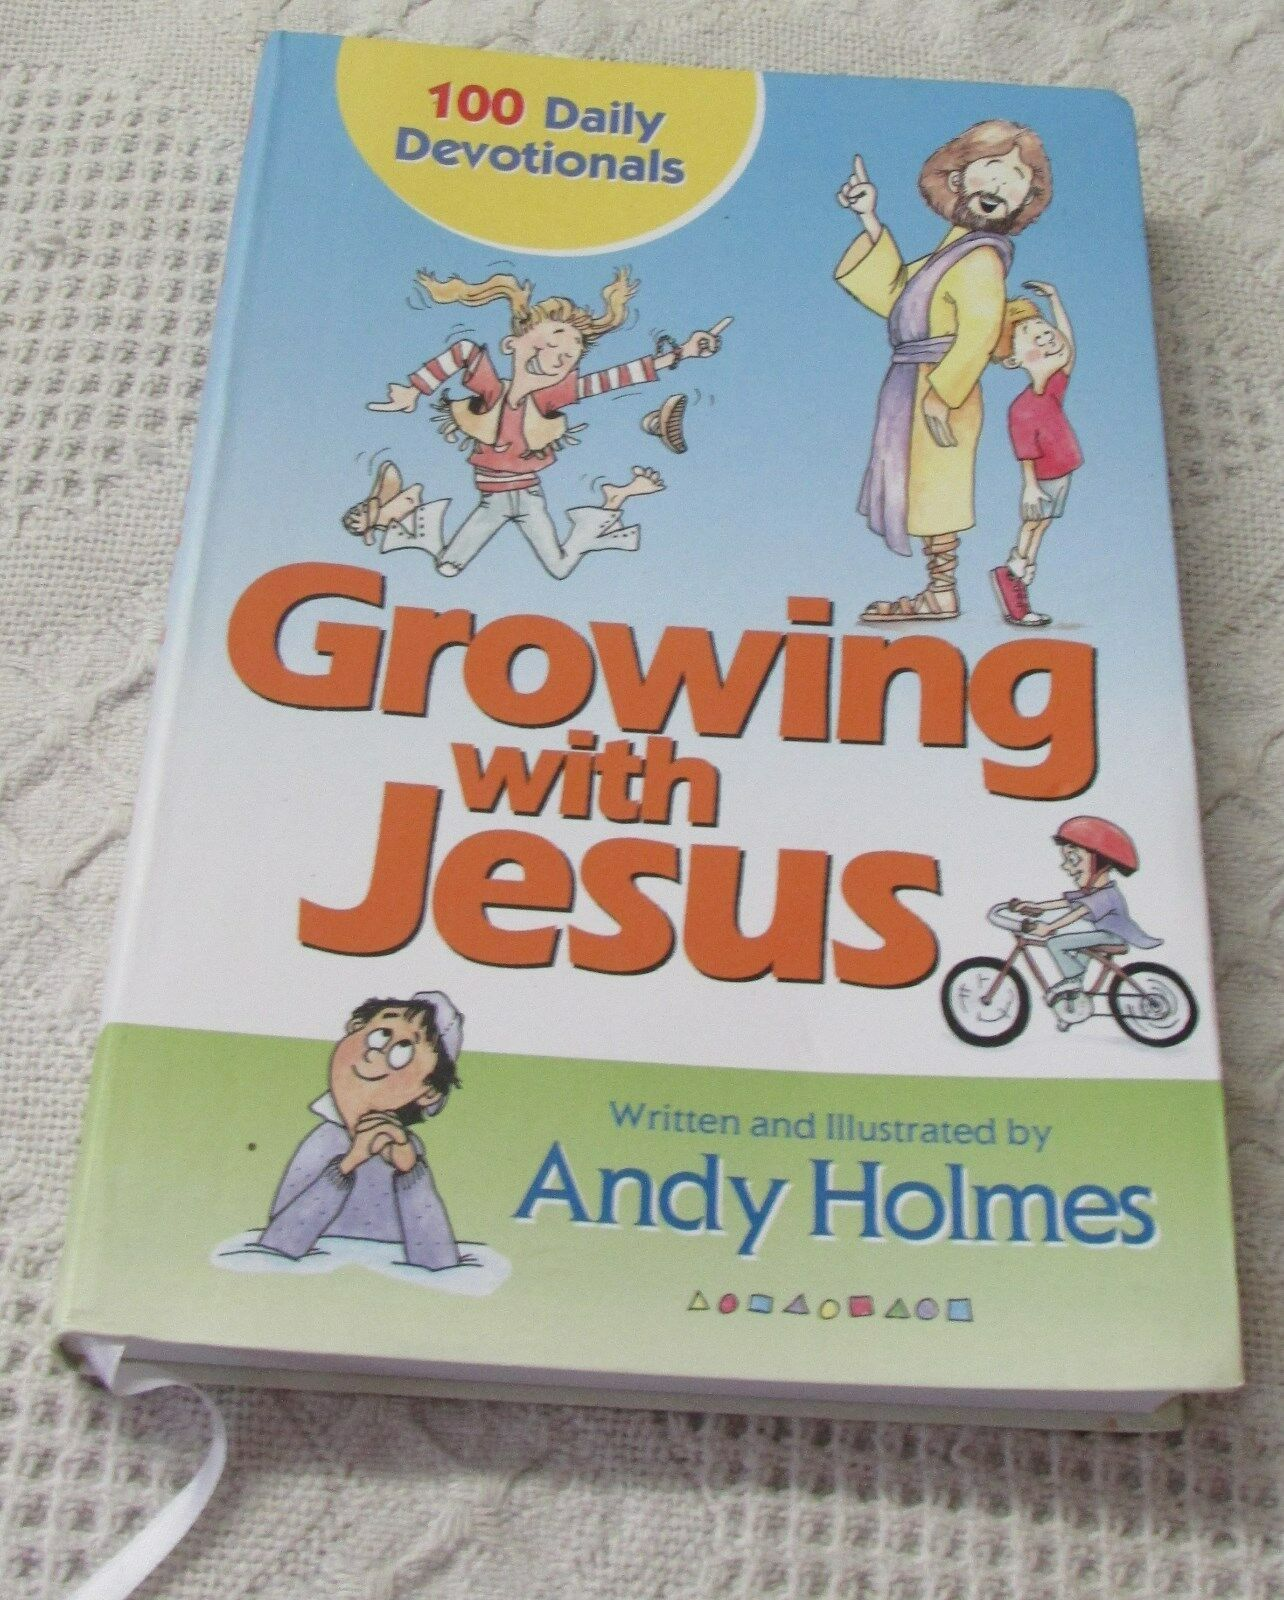 Growing with Jesus : 100 Daily Devotionals by Andy Holmes (2006, Paperback)  | eBay